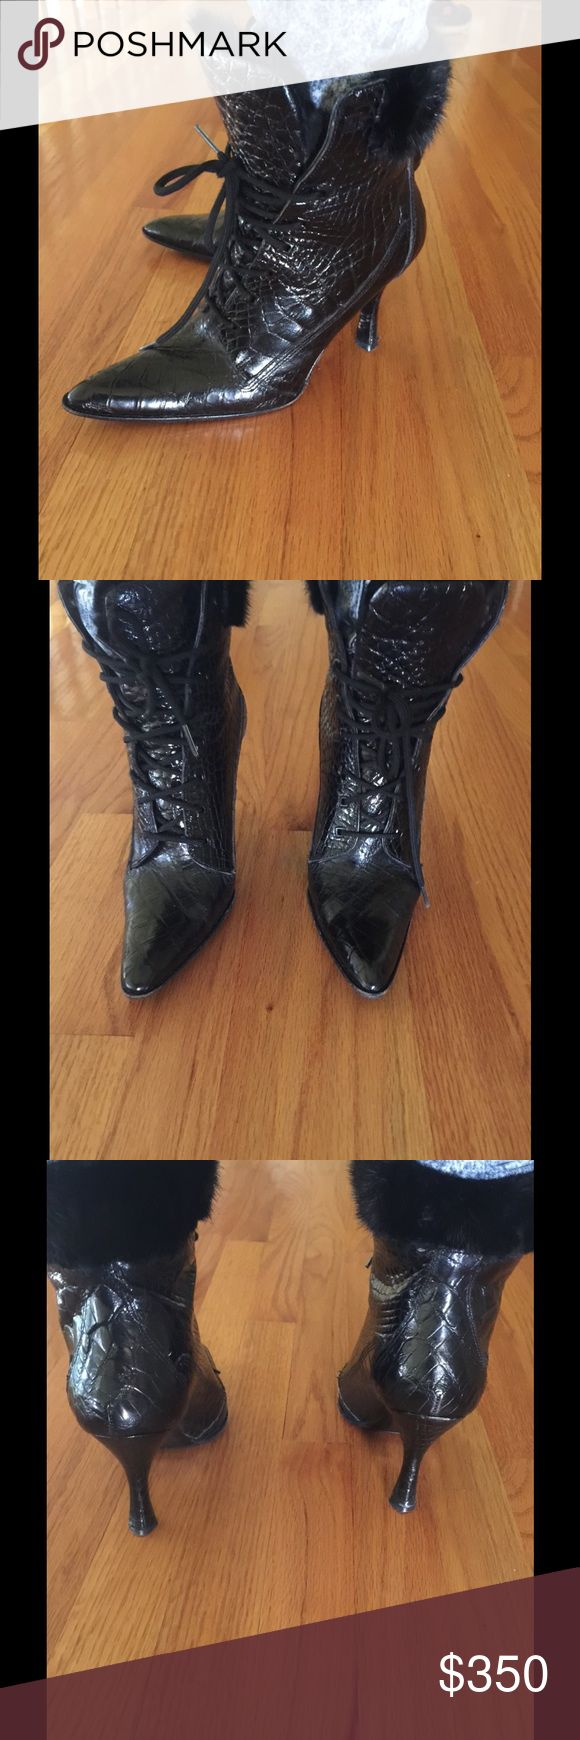 Mauri alligator boots with mink fur trim Black alligator boots with mink fur trim  wore only 3 times very good condition no bag mauri Shoes Ankle Boots & Booties